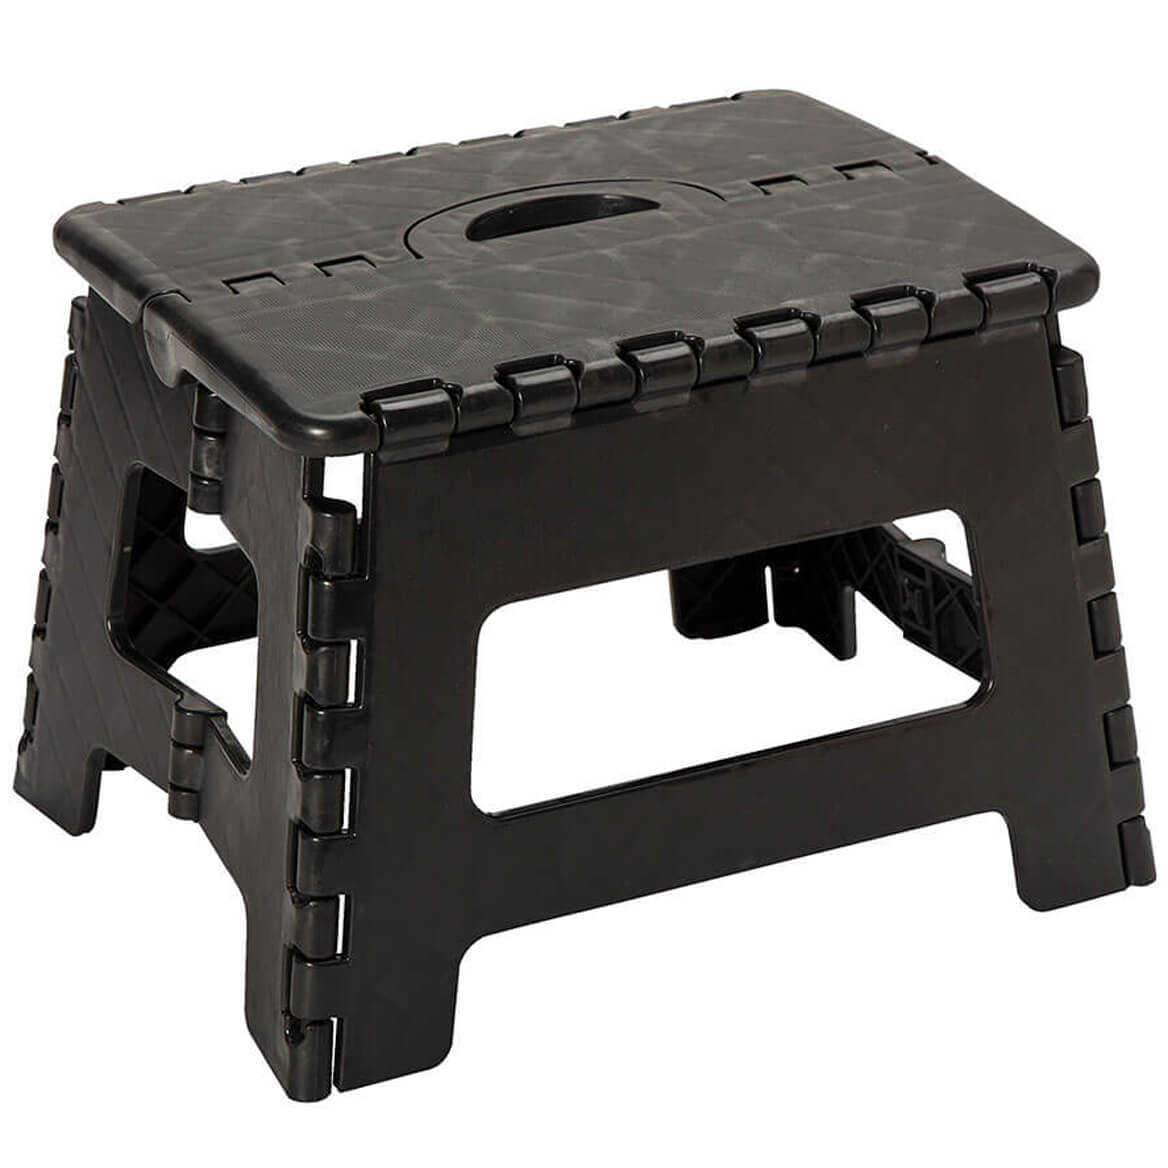 Fine Folding Step Stool Ocoug Best Dining Table And Chair Ideas Images Ocougorg